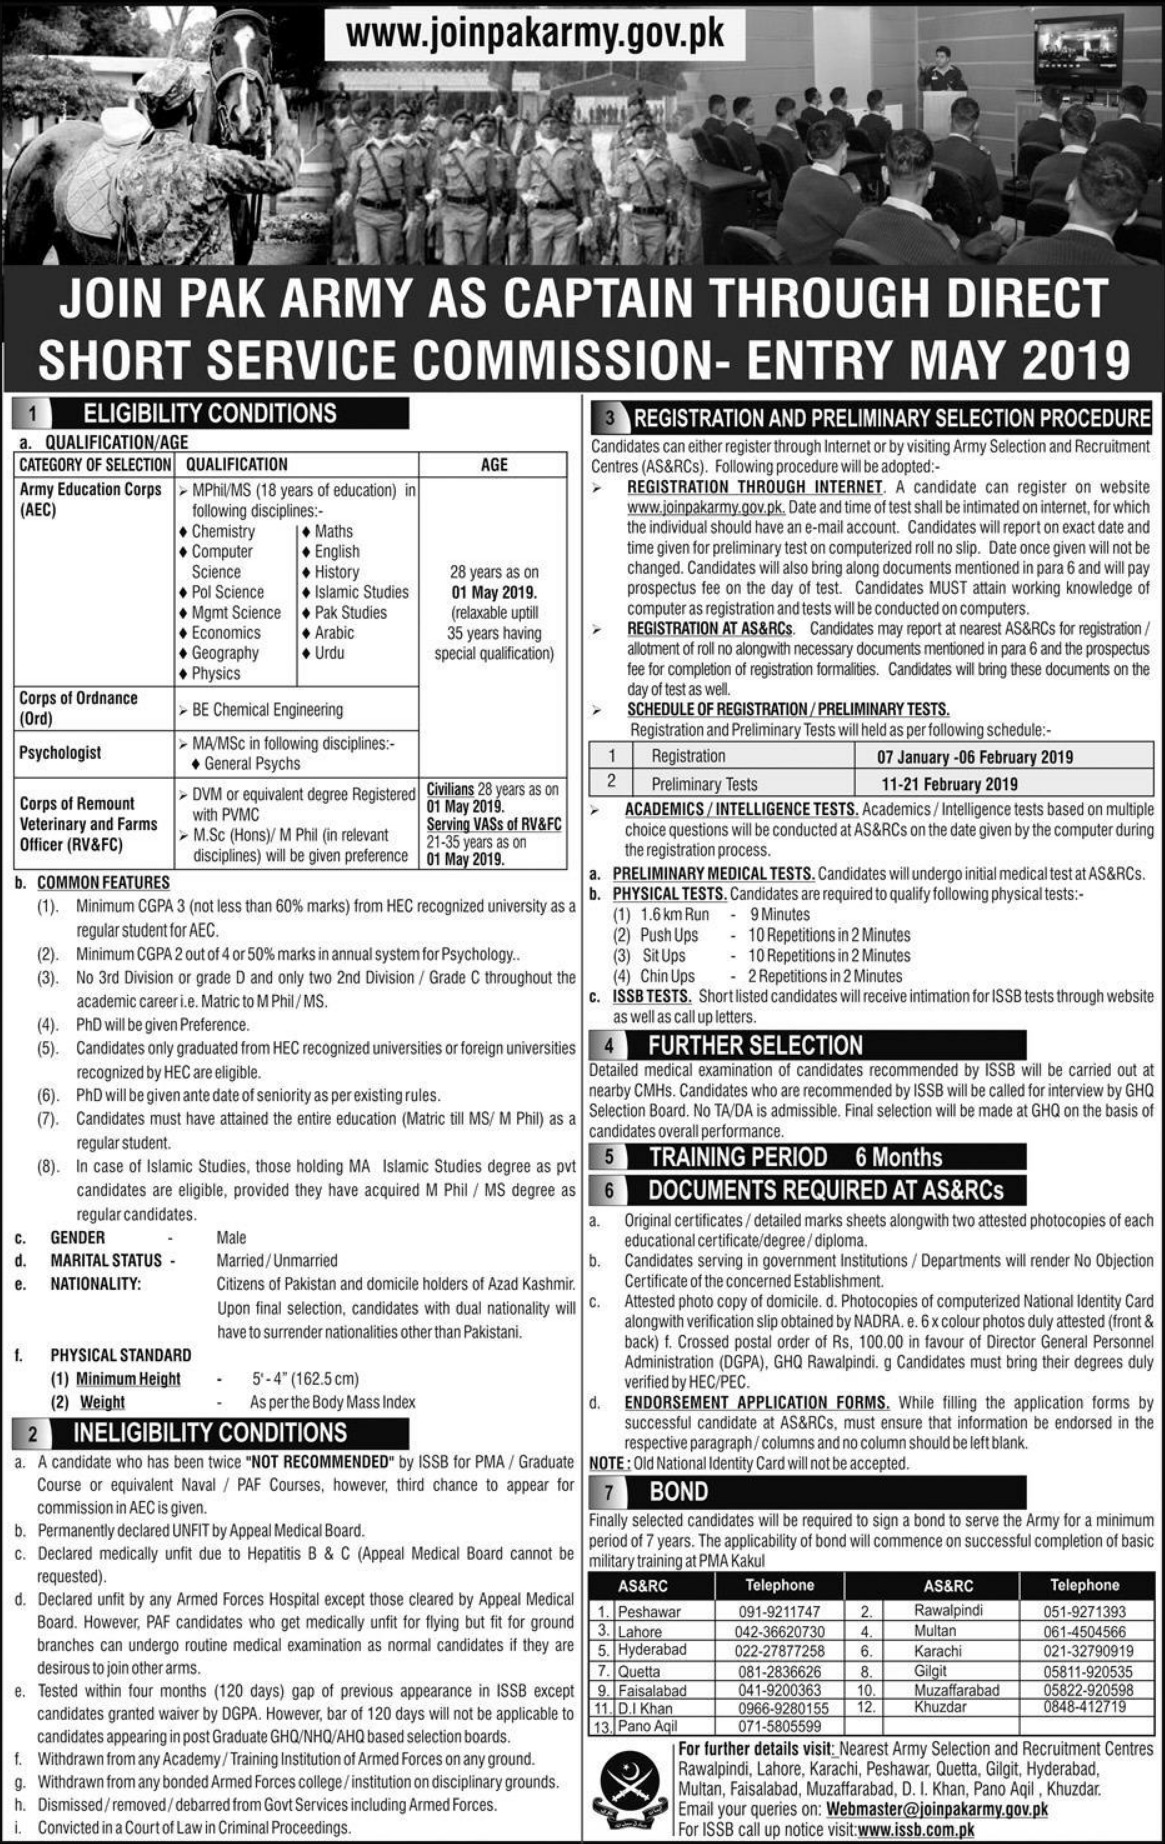 Join Pak Army as Captain through DSSC Entry May 2019